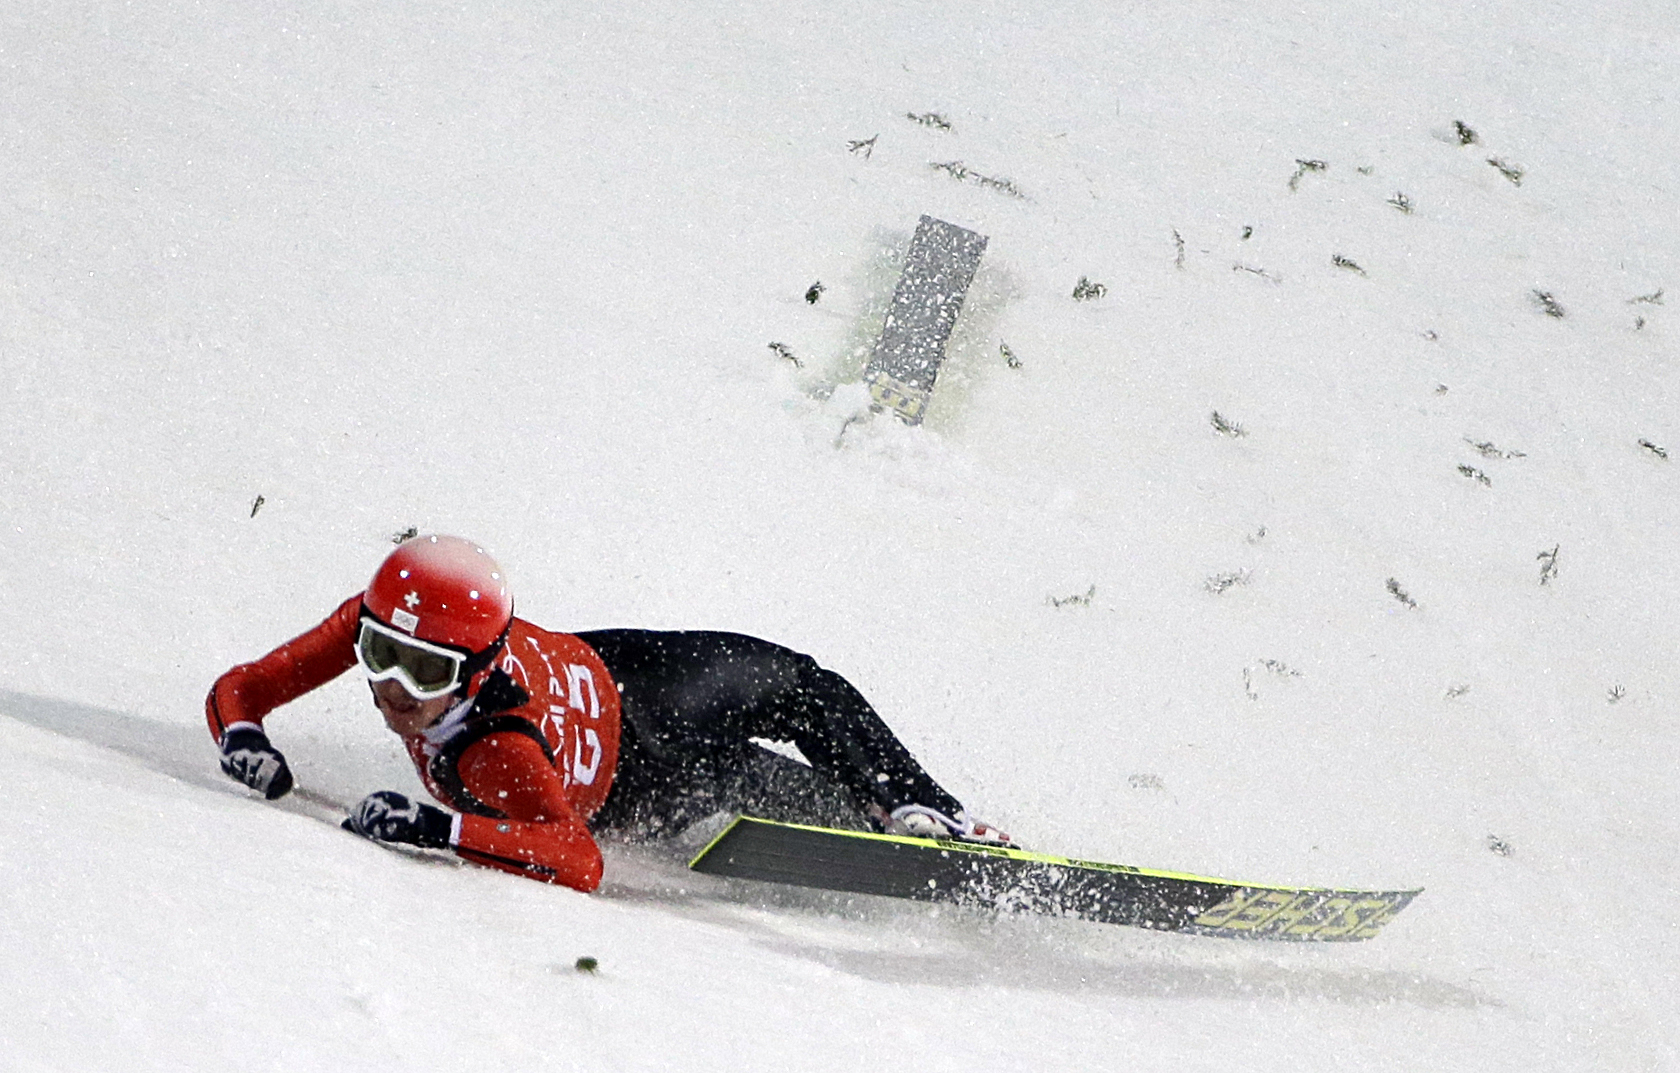 Switzerland's Simon Ammann crashes during a training session for the men's large hill ski jumping at the 2014 Winter Olympics, Thursday, Feb. 13, 2014, in Krasnaya Polyana, Russia. (AP Photo/Gregorio Borgia)